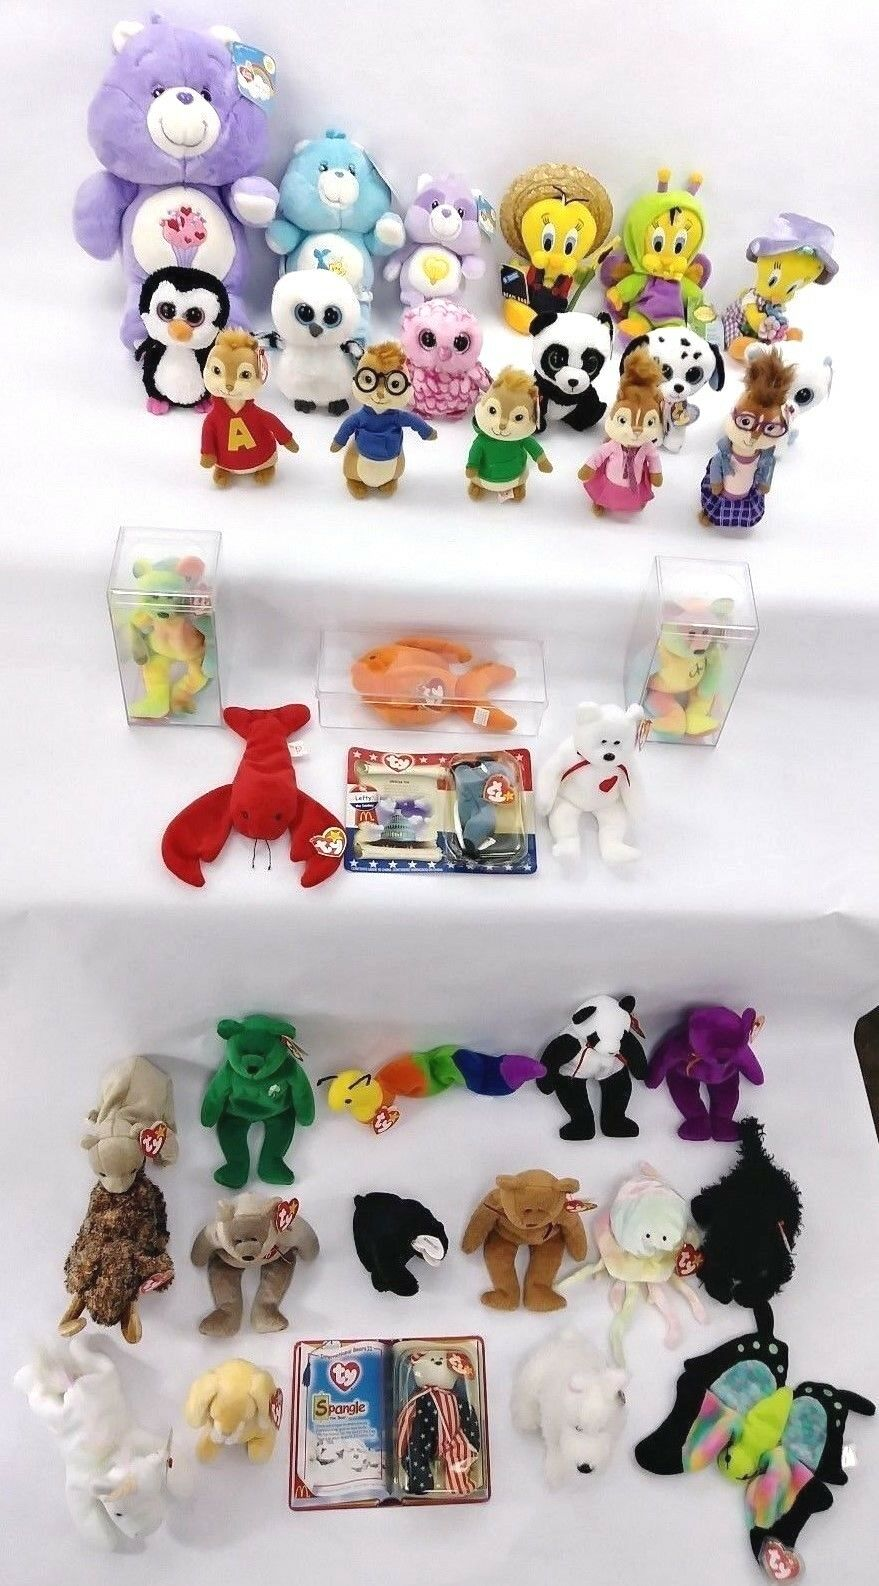 TY Beanie Baby Collection 1st Gen Tush w  3rd Hang Tag Encased lot w  PVC Garcia